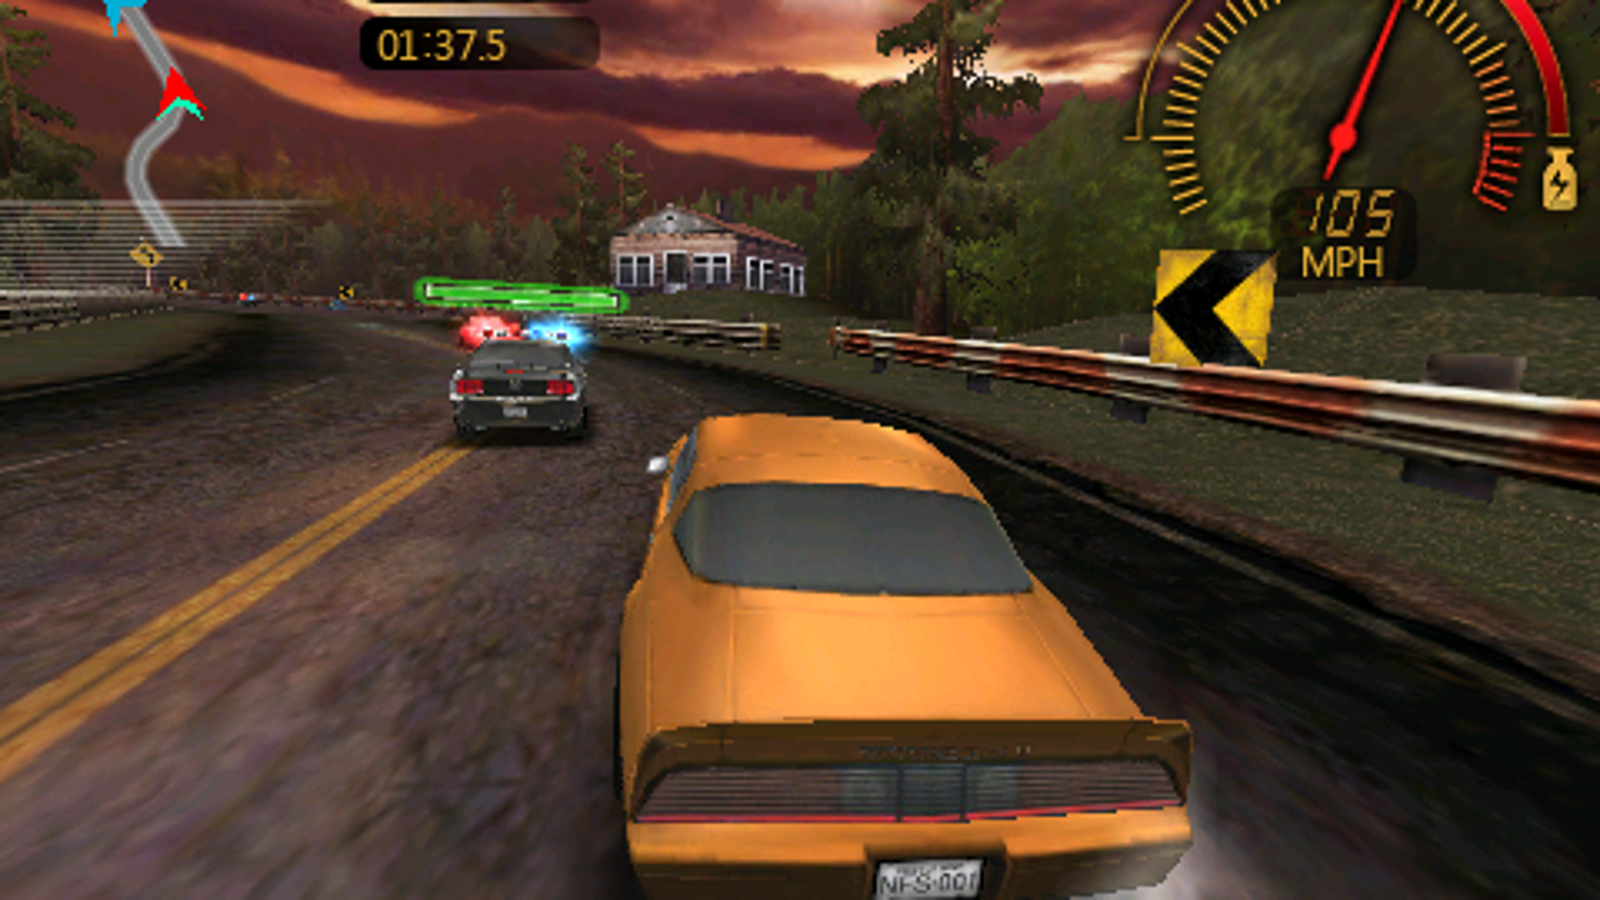 How to change language in need for speed undercover iphone